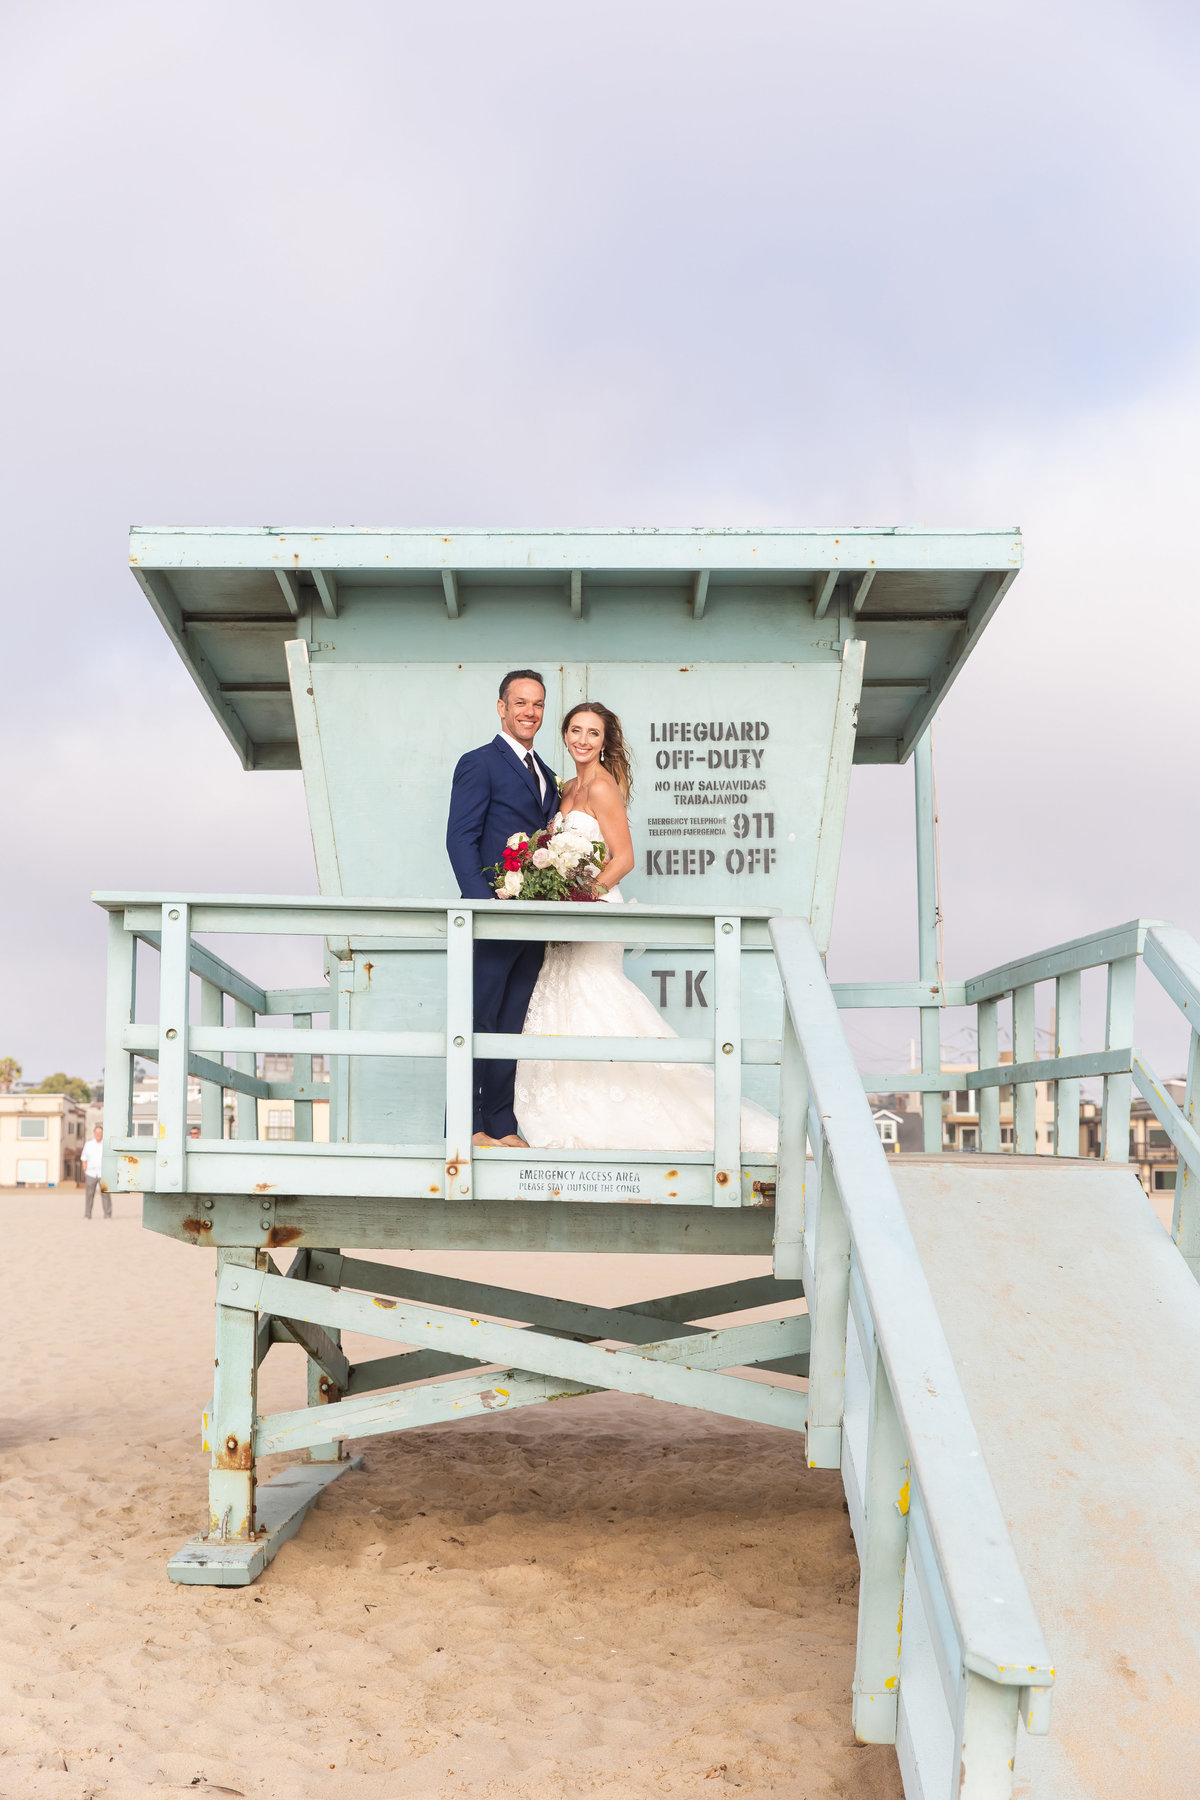 redondo-beach-hotel-wedding-california-cool-coastal-halley-lutz-wedding-photography